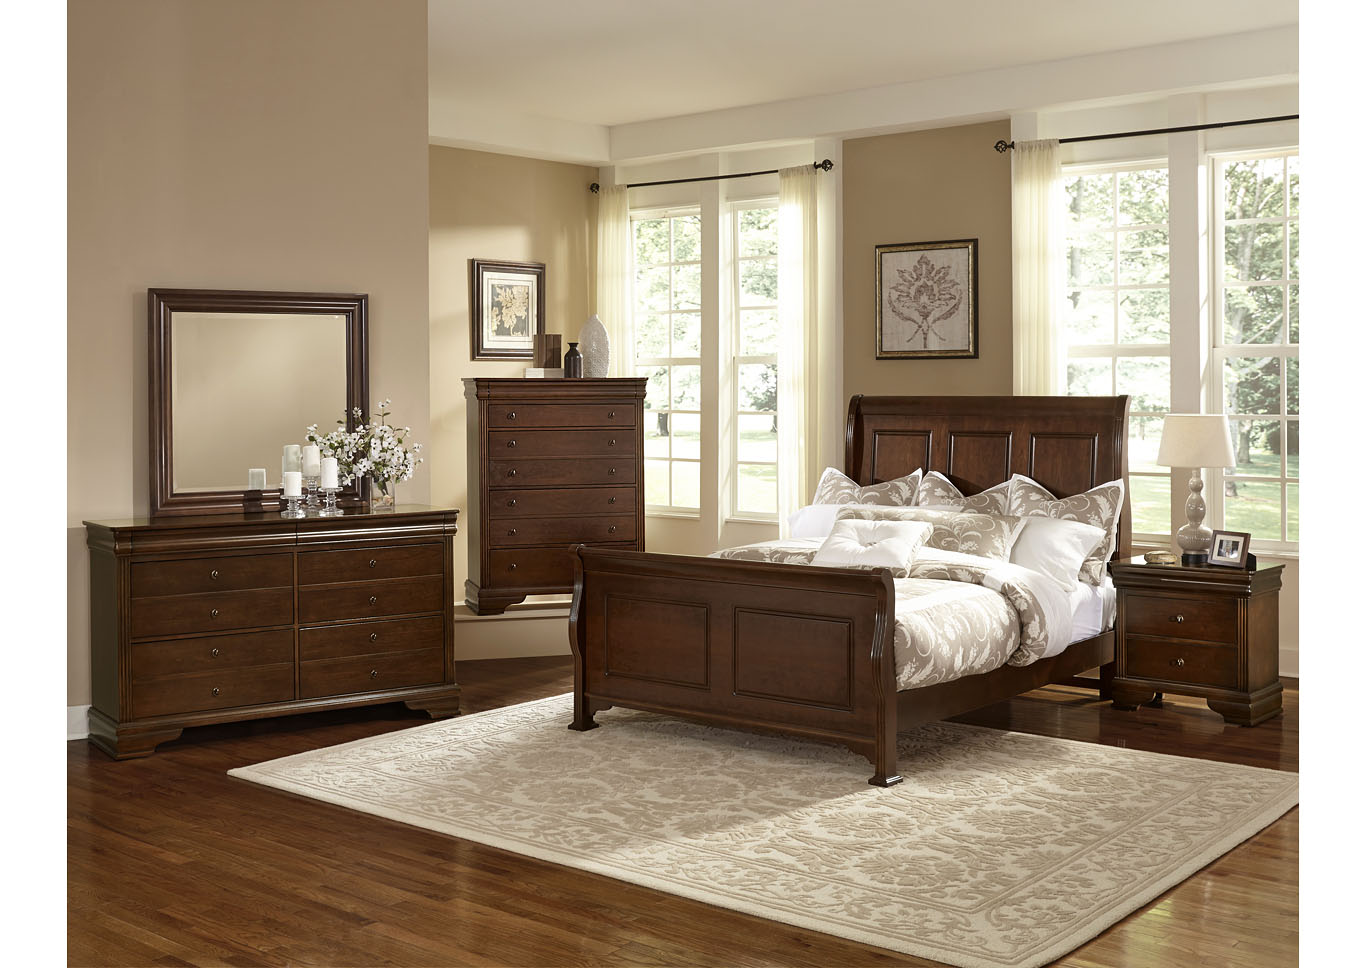 French Market French Cherry King Poster Bed,Vaughan-Bassett